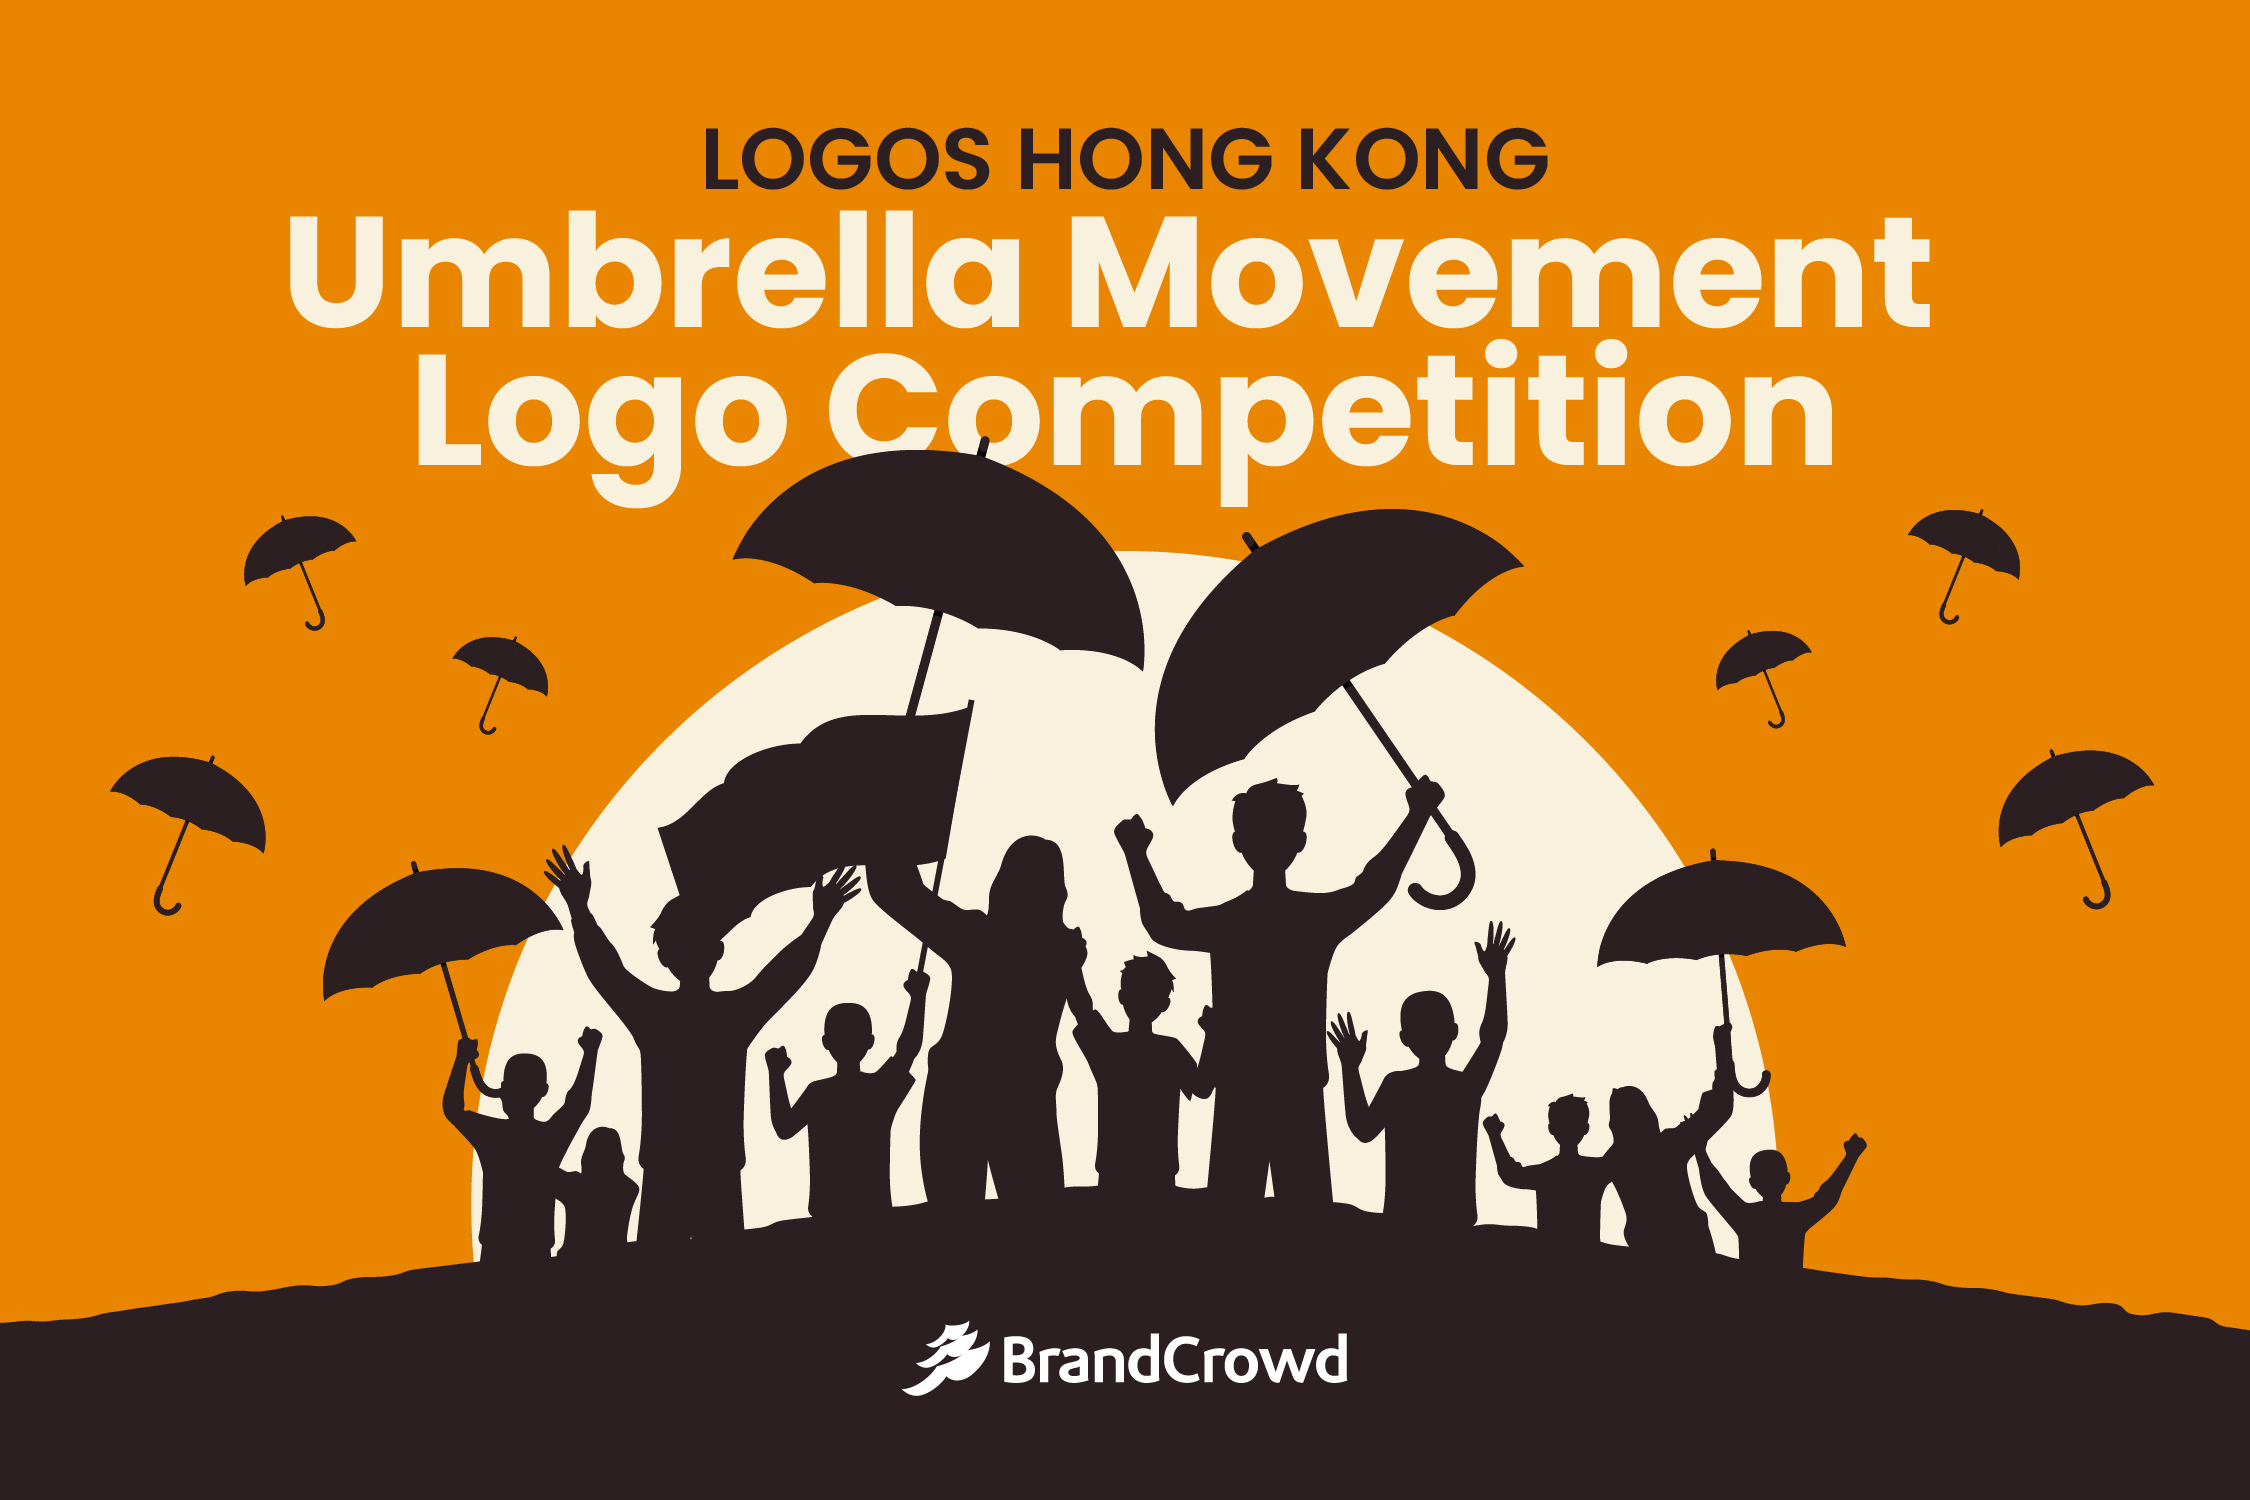 the-header-depicts-a-silhouette-of-people-gathering-with-umbrellas